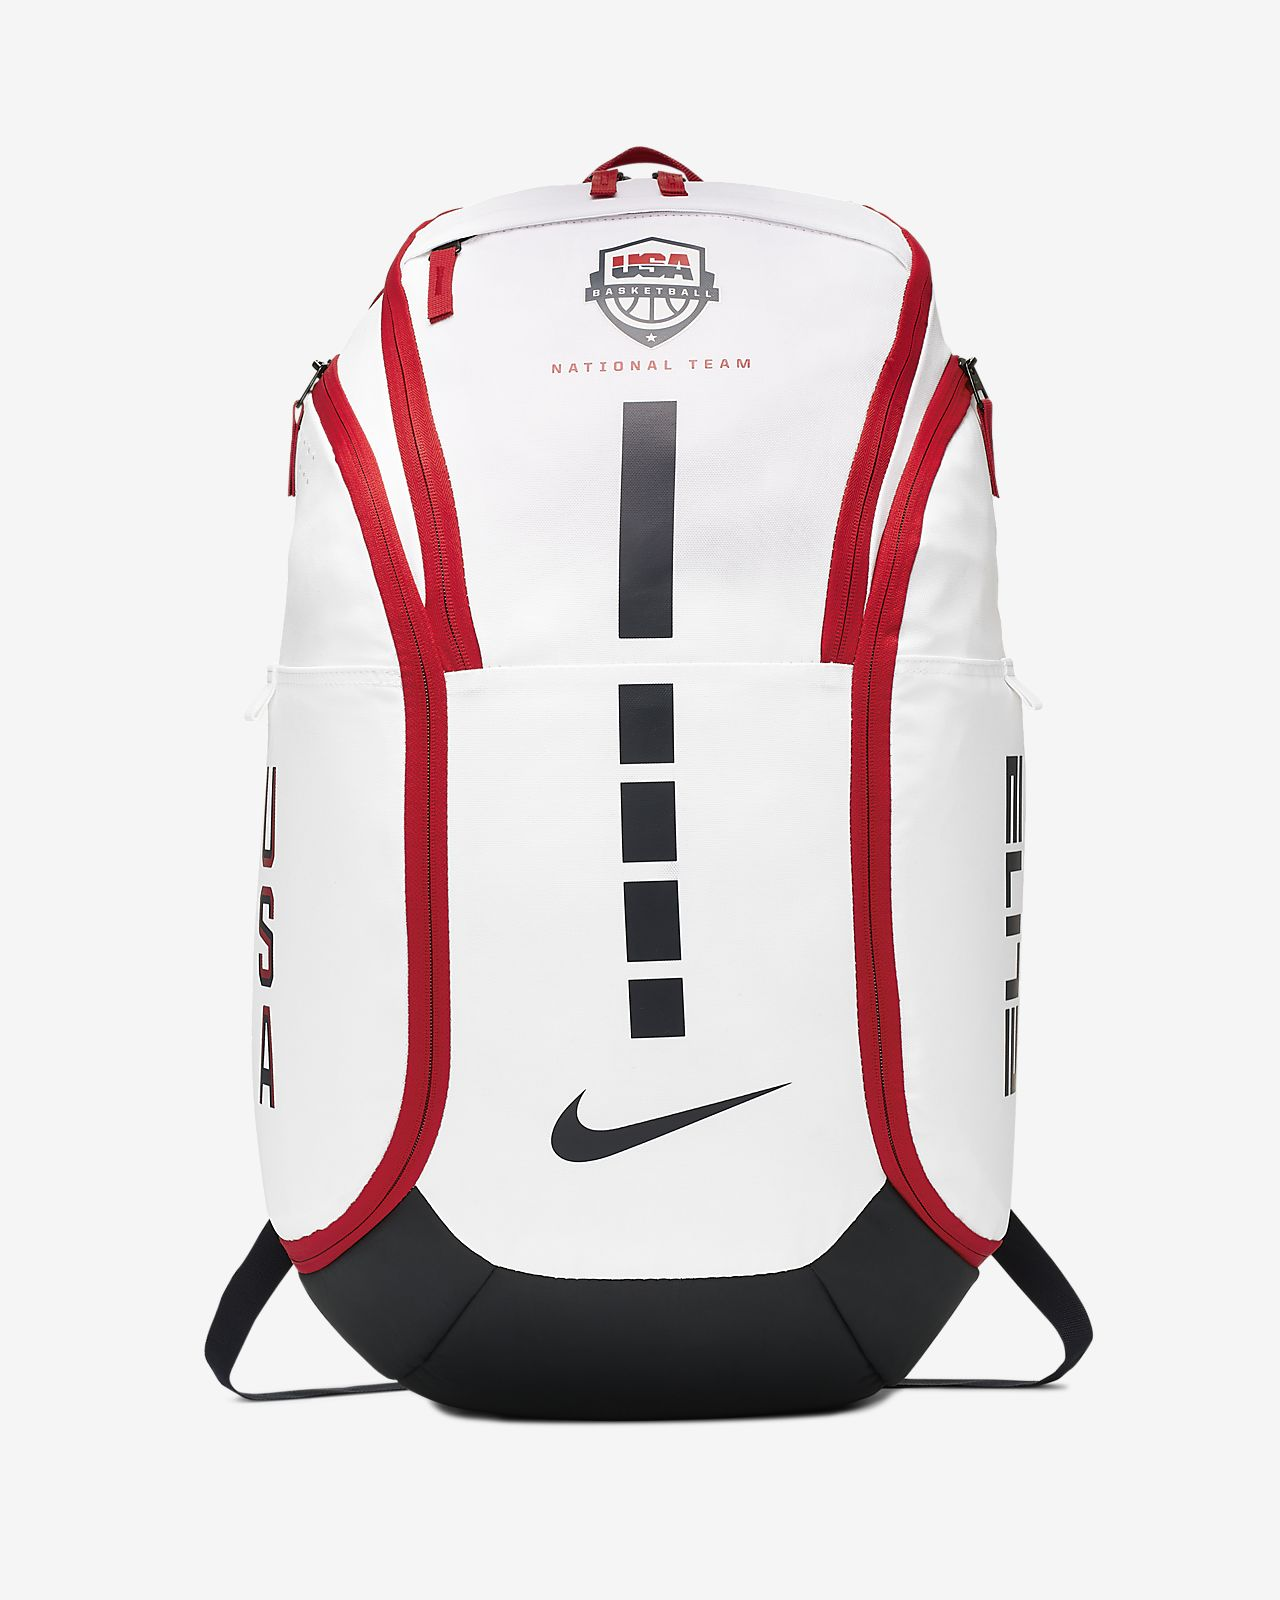 Nike Hoops Elite Team USA Basketball Backpack